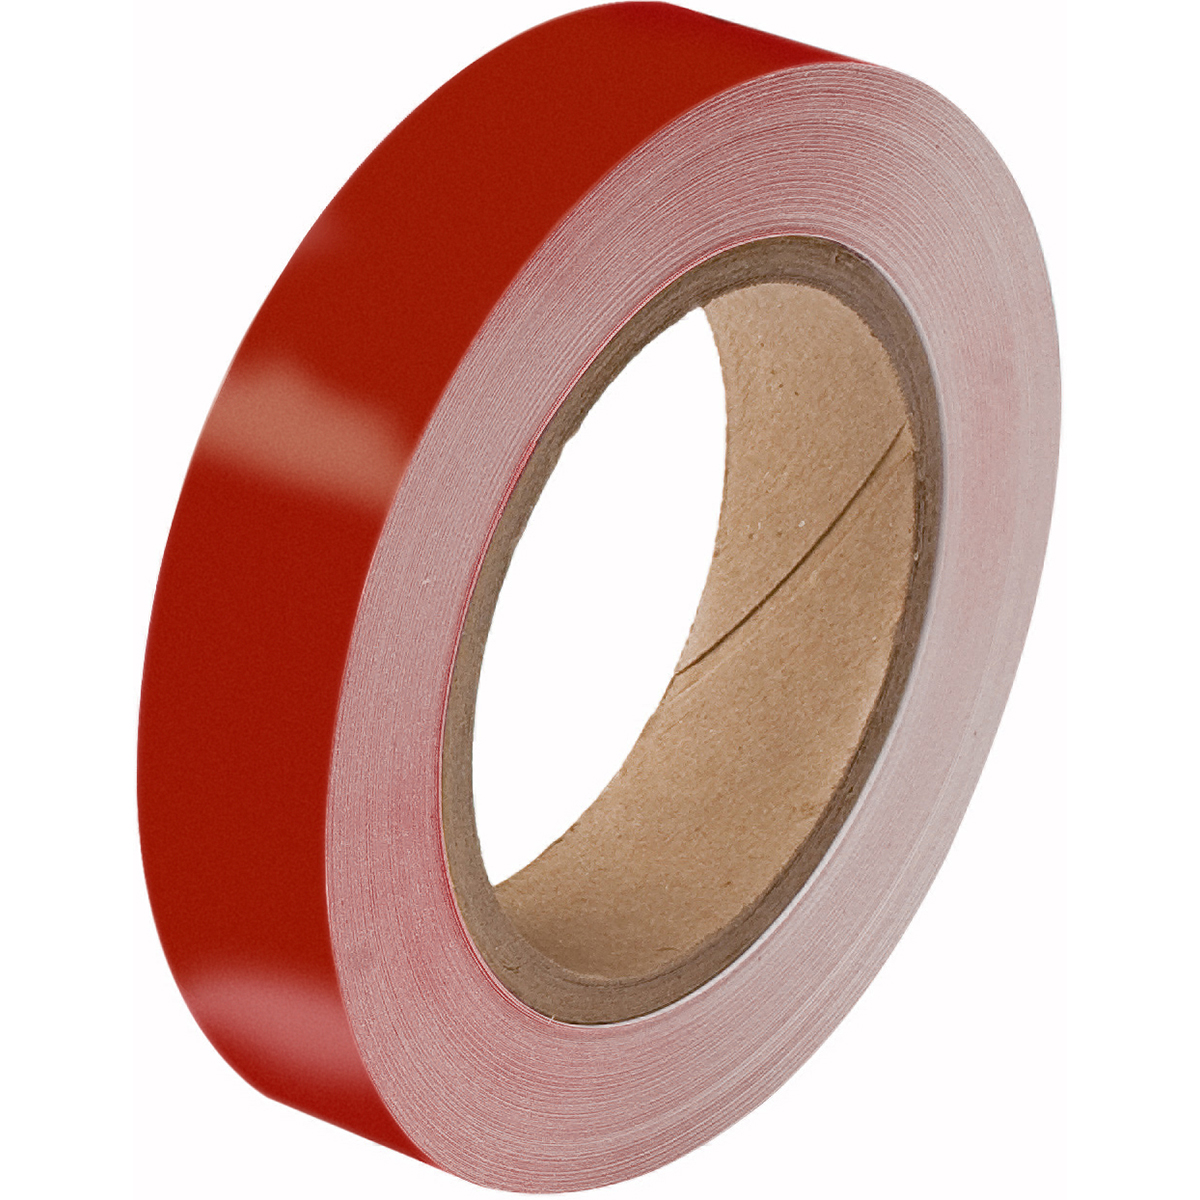 Pipe Banding tape Red 25mm